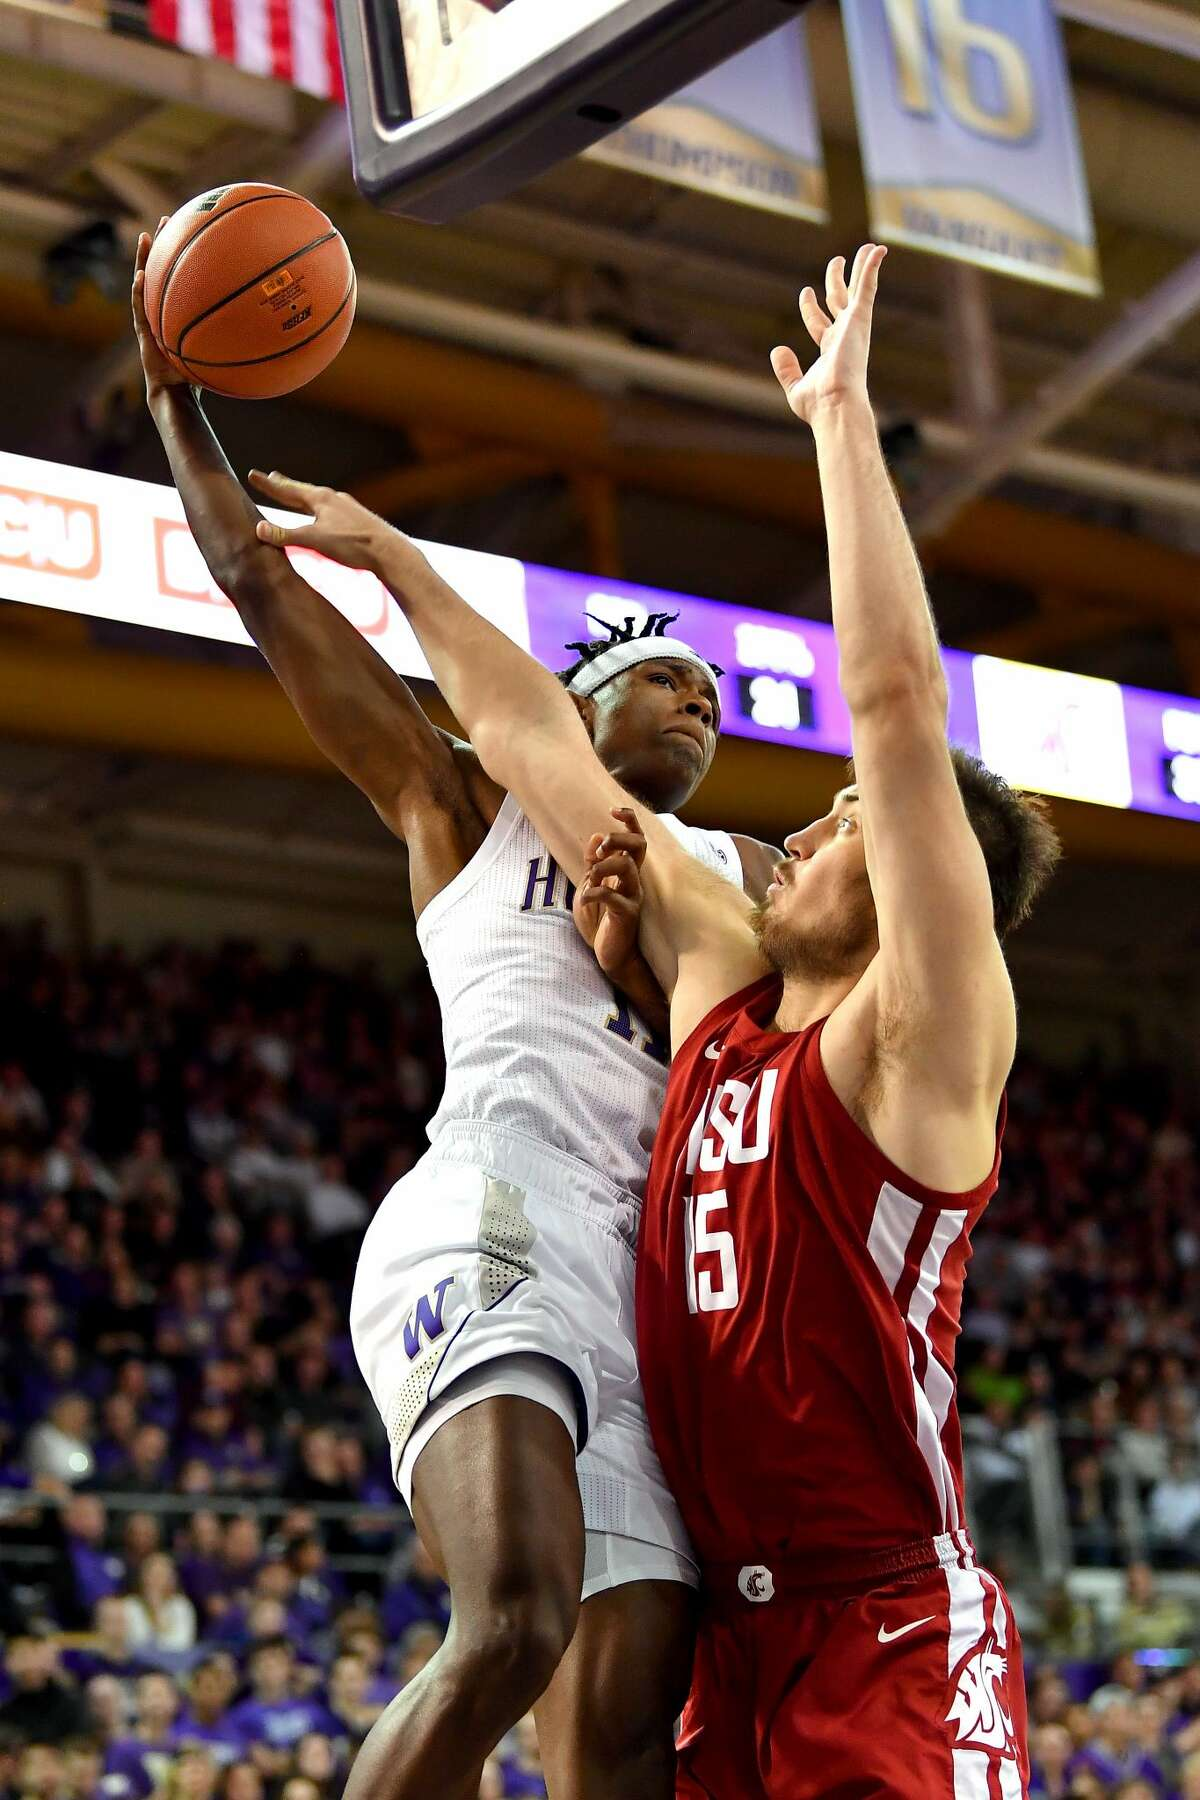 SEATTLE, WASHINGTON - FEBRUARY 28: Nahziah Carter #11 of the Washington Huskies elevates to the basket against Volodymyr Markovetskyy #15 of the Washington State Cougars during the second half of the game at the Alaska Airlines Arena at Hec Edmundson Pavilion on February 28, 2020 in Seattle, Washington. The WSU Cougars topped the UW Huskies, 78-74. (Photo by Alika Jenner/Getty Images)